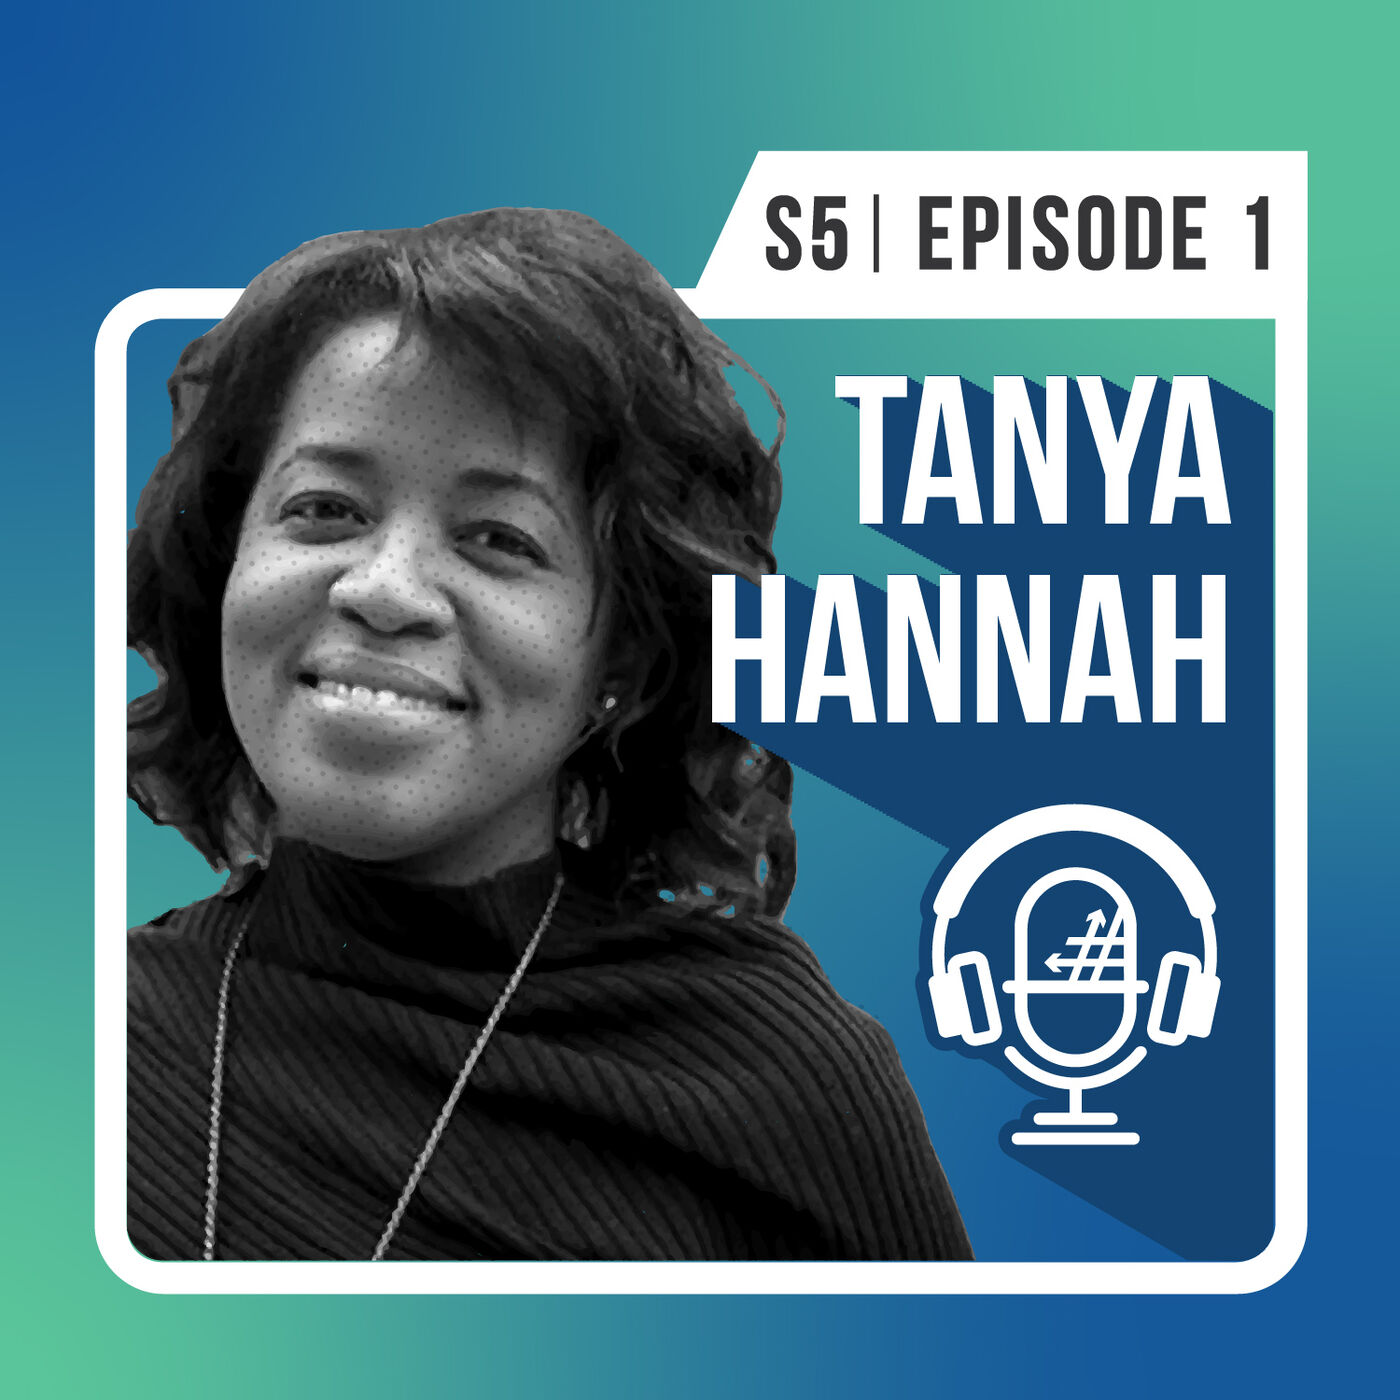 S5 E1: Making Services Safer in King County, Wash.